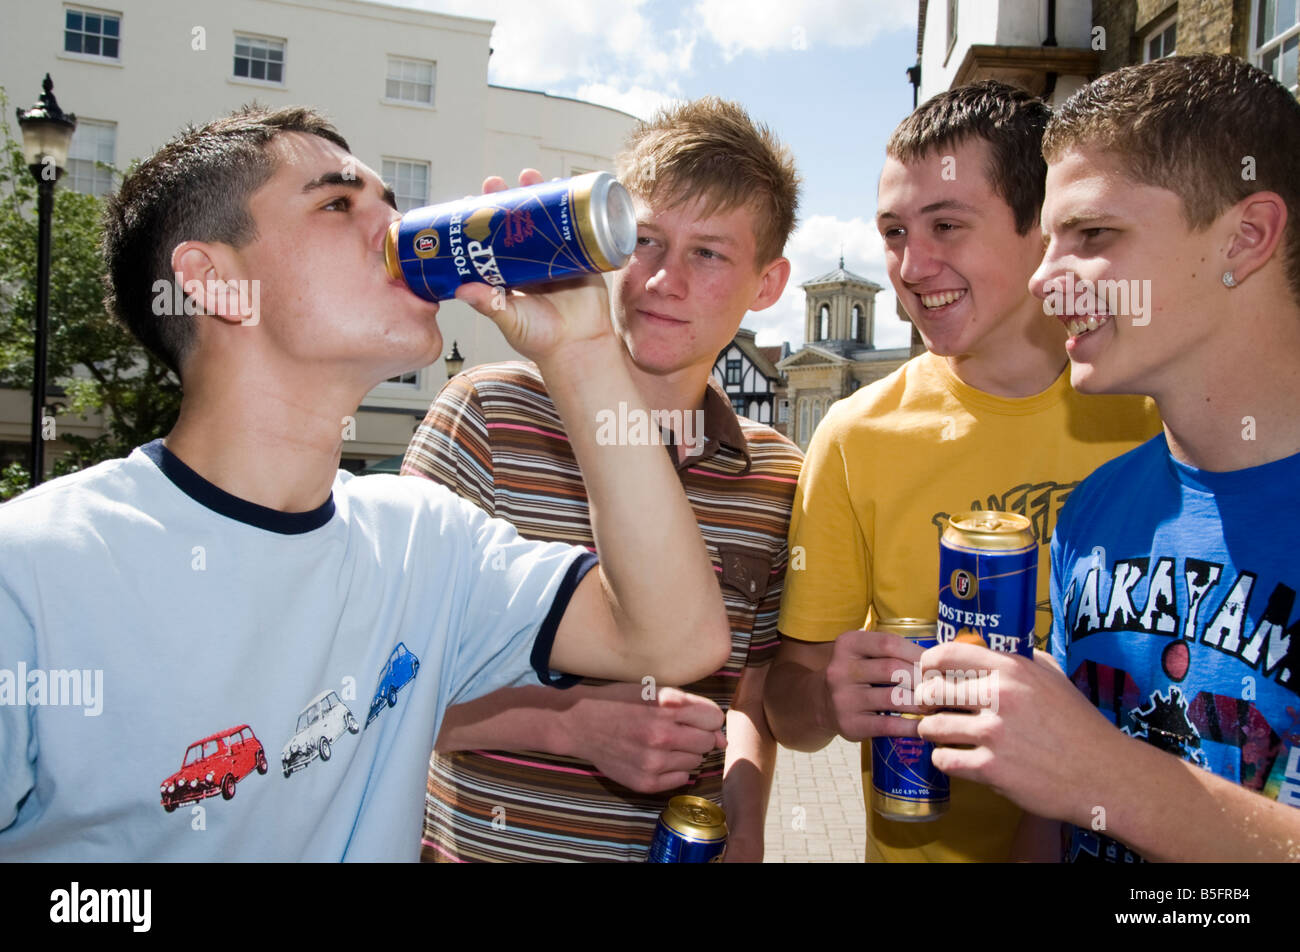 Essay on influences of drinking alcohol on teenagers